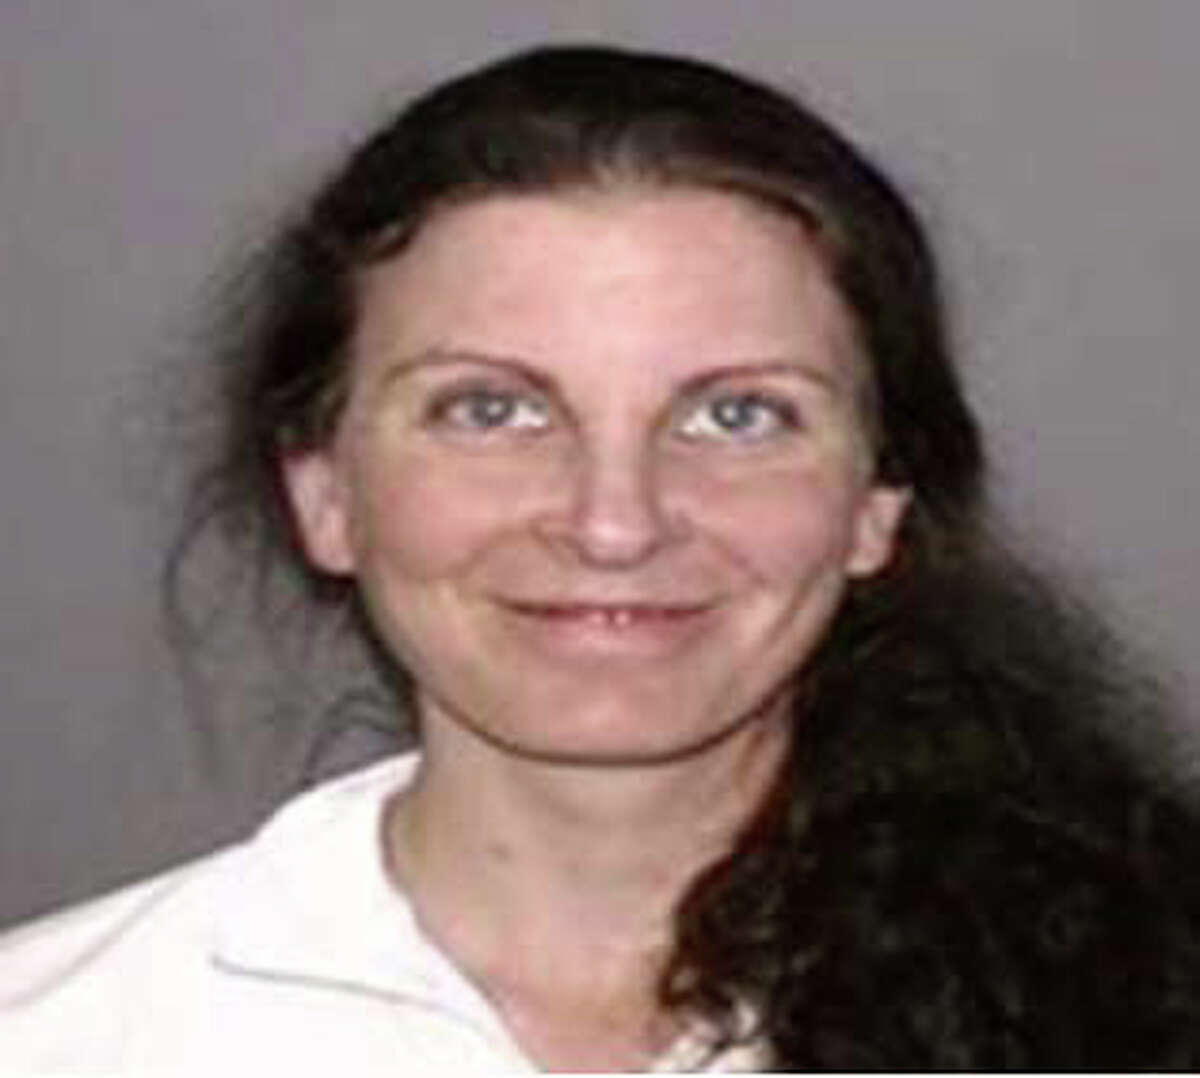 This photo of Clare Bronfman was submitted as evidence in the federal trial of Keith Raniere. (U.S. Department of Justice)